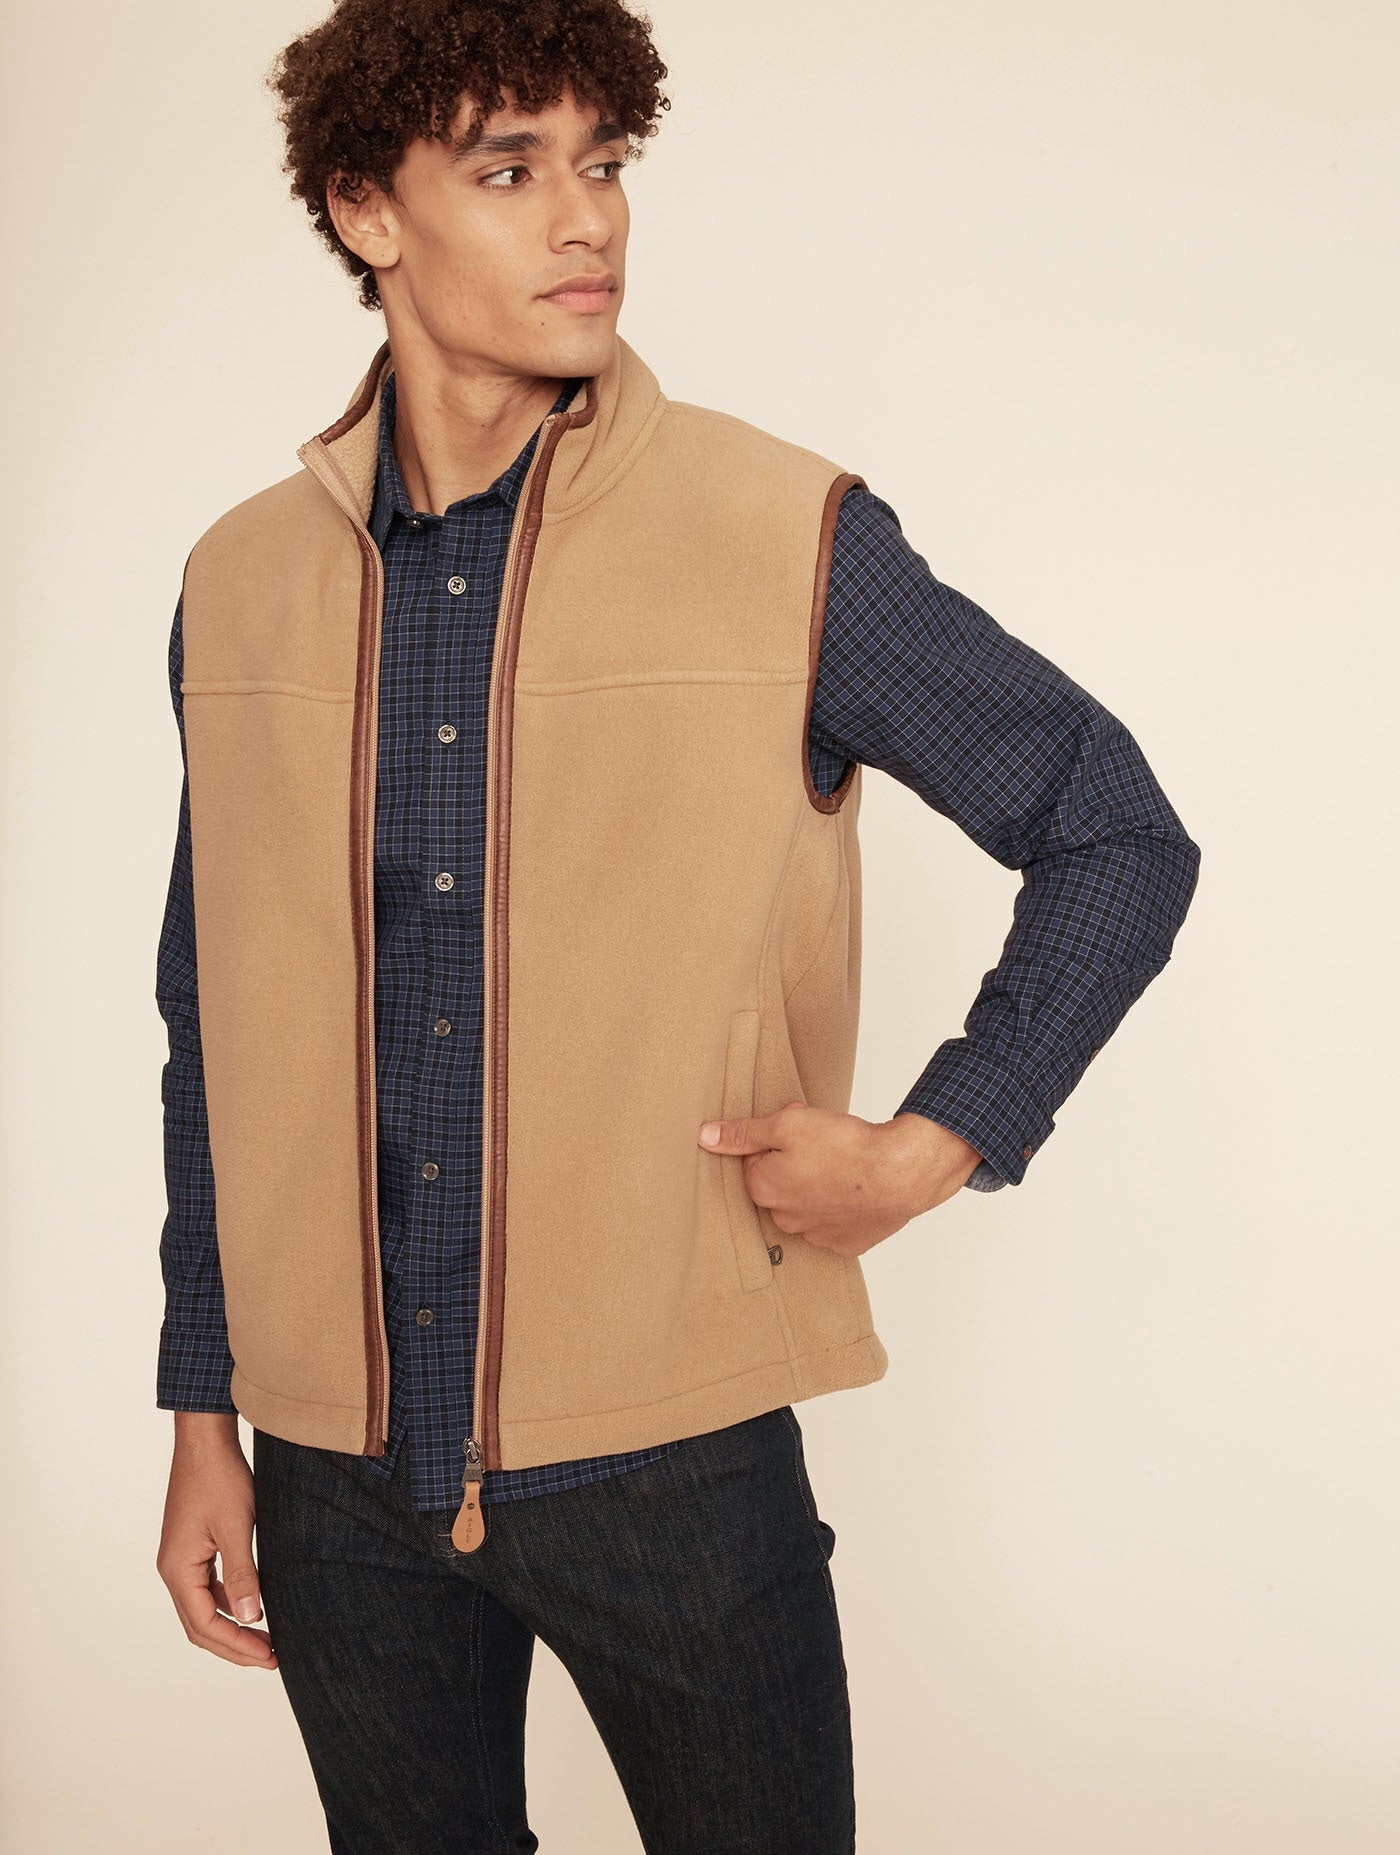 Aigle Pebble New Shepper Vest - LAST SIZES!